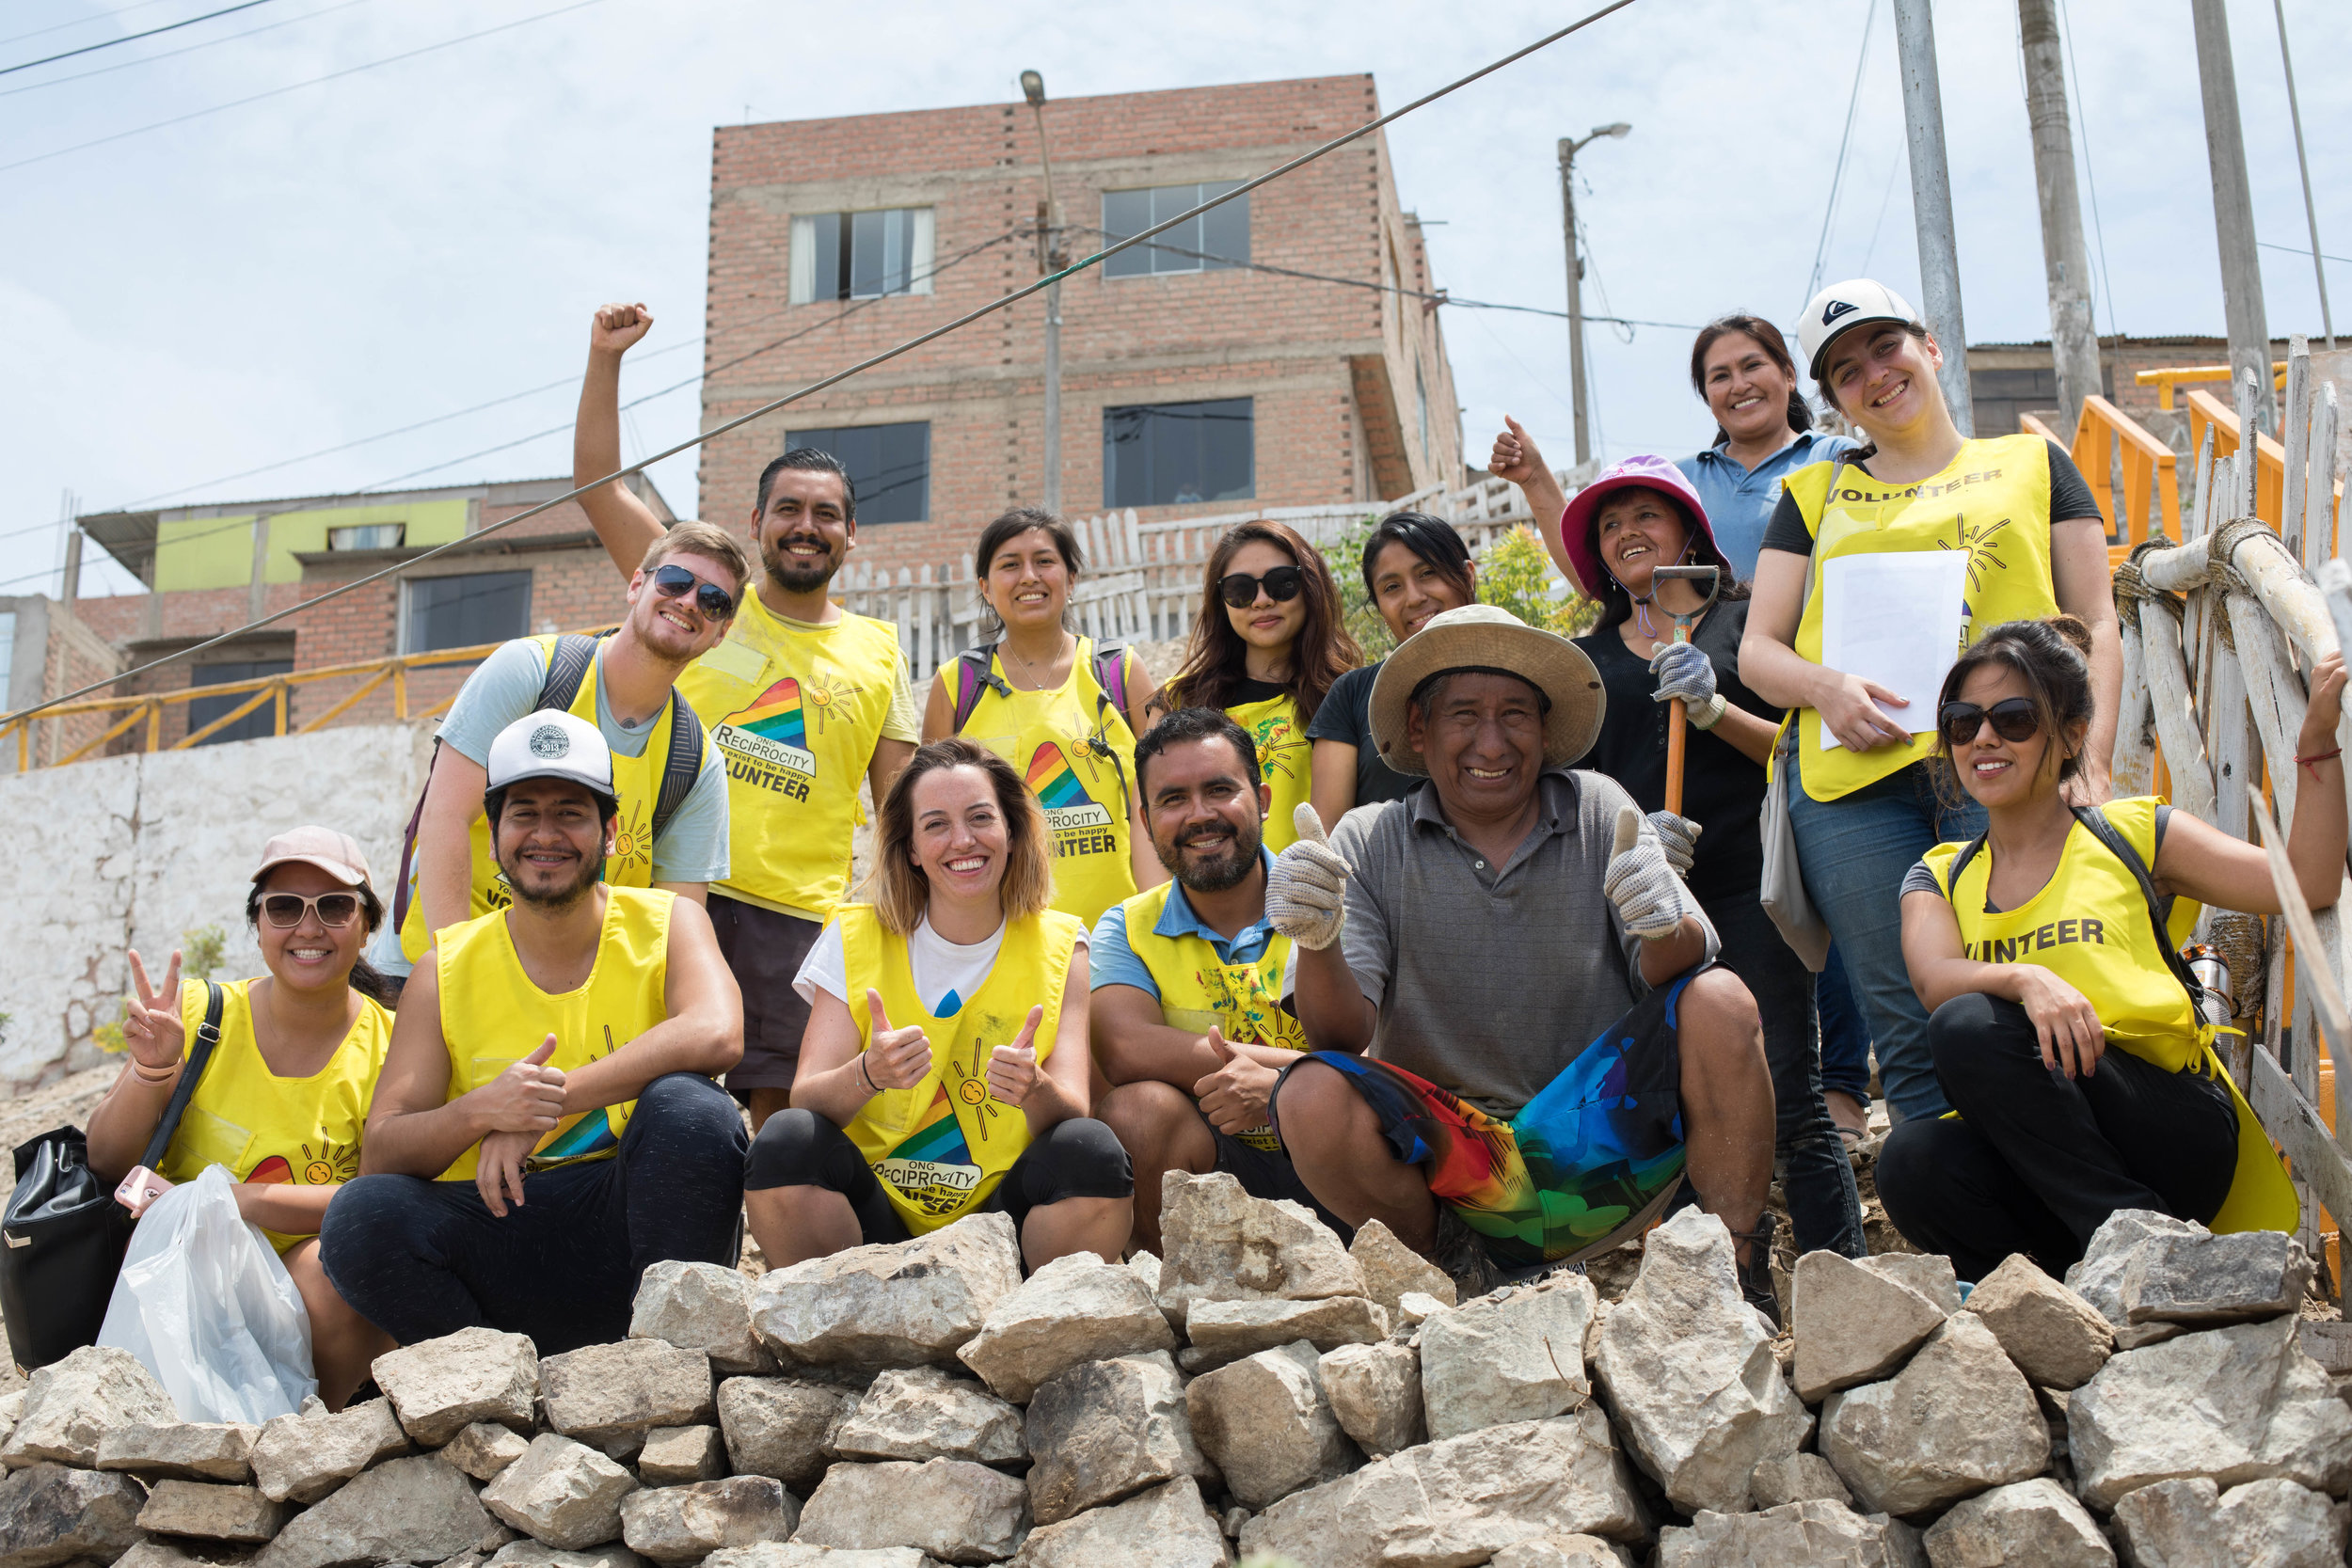 The happy and hard working volunteers of Reciprocity NGO in Lima, Peru.